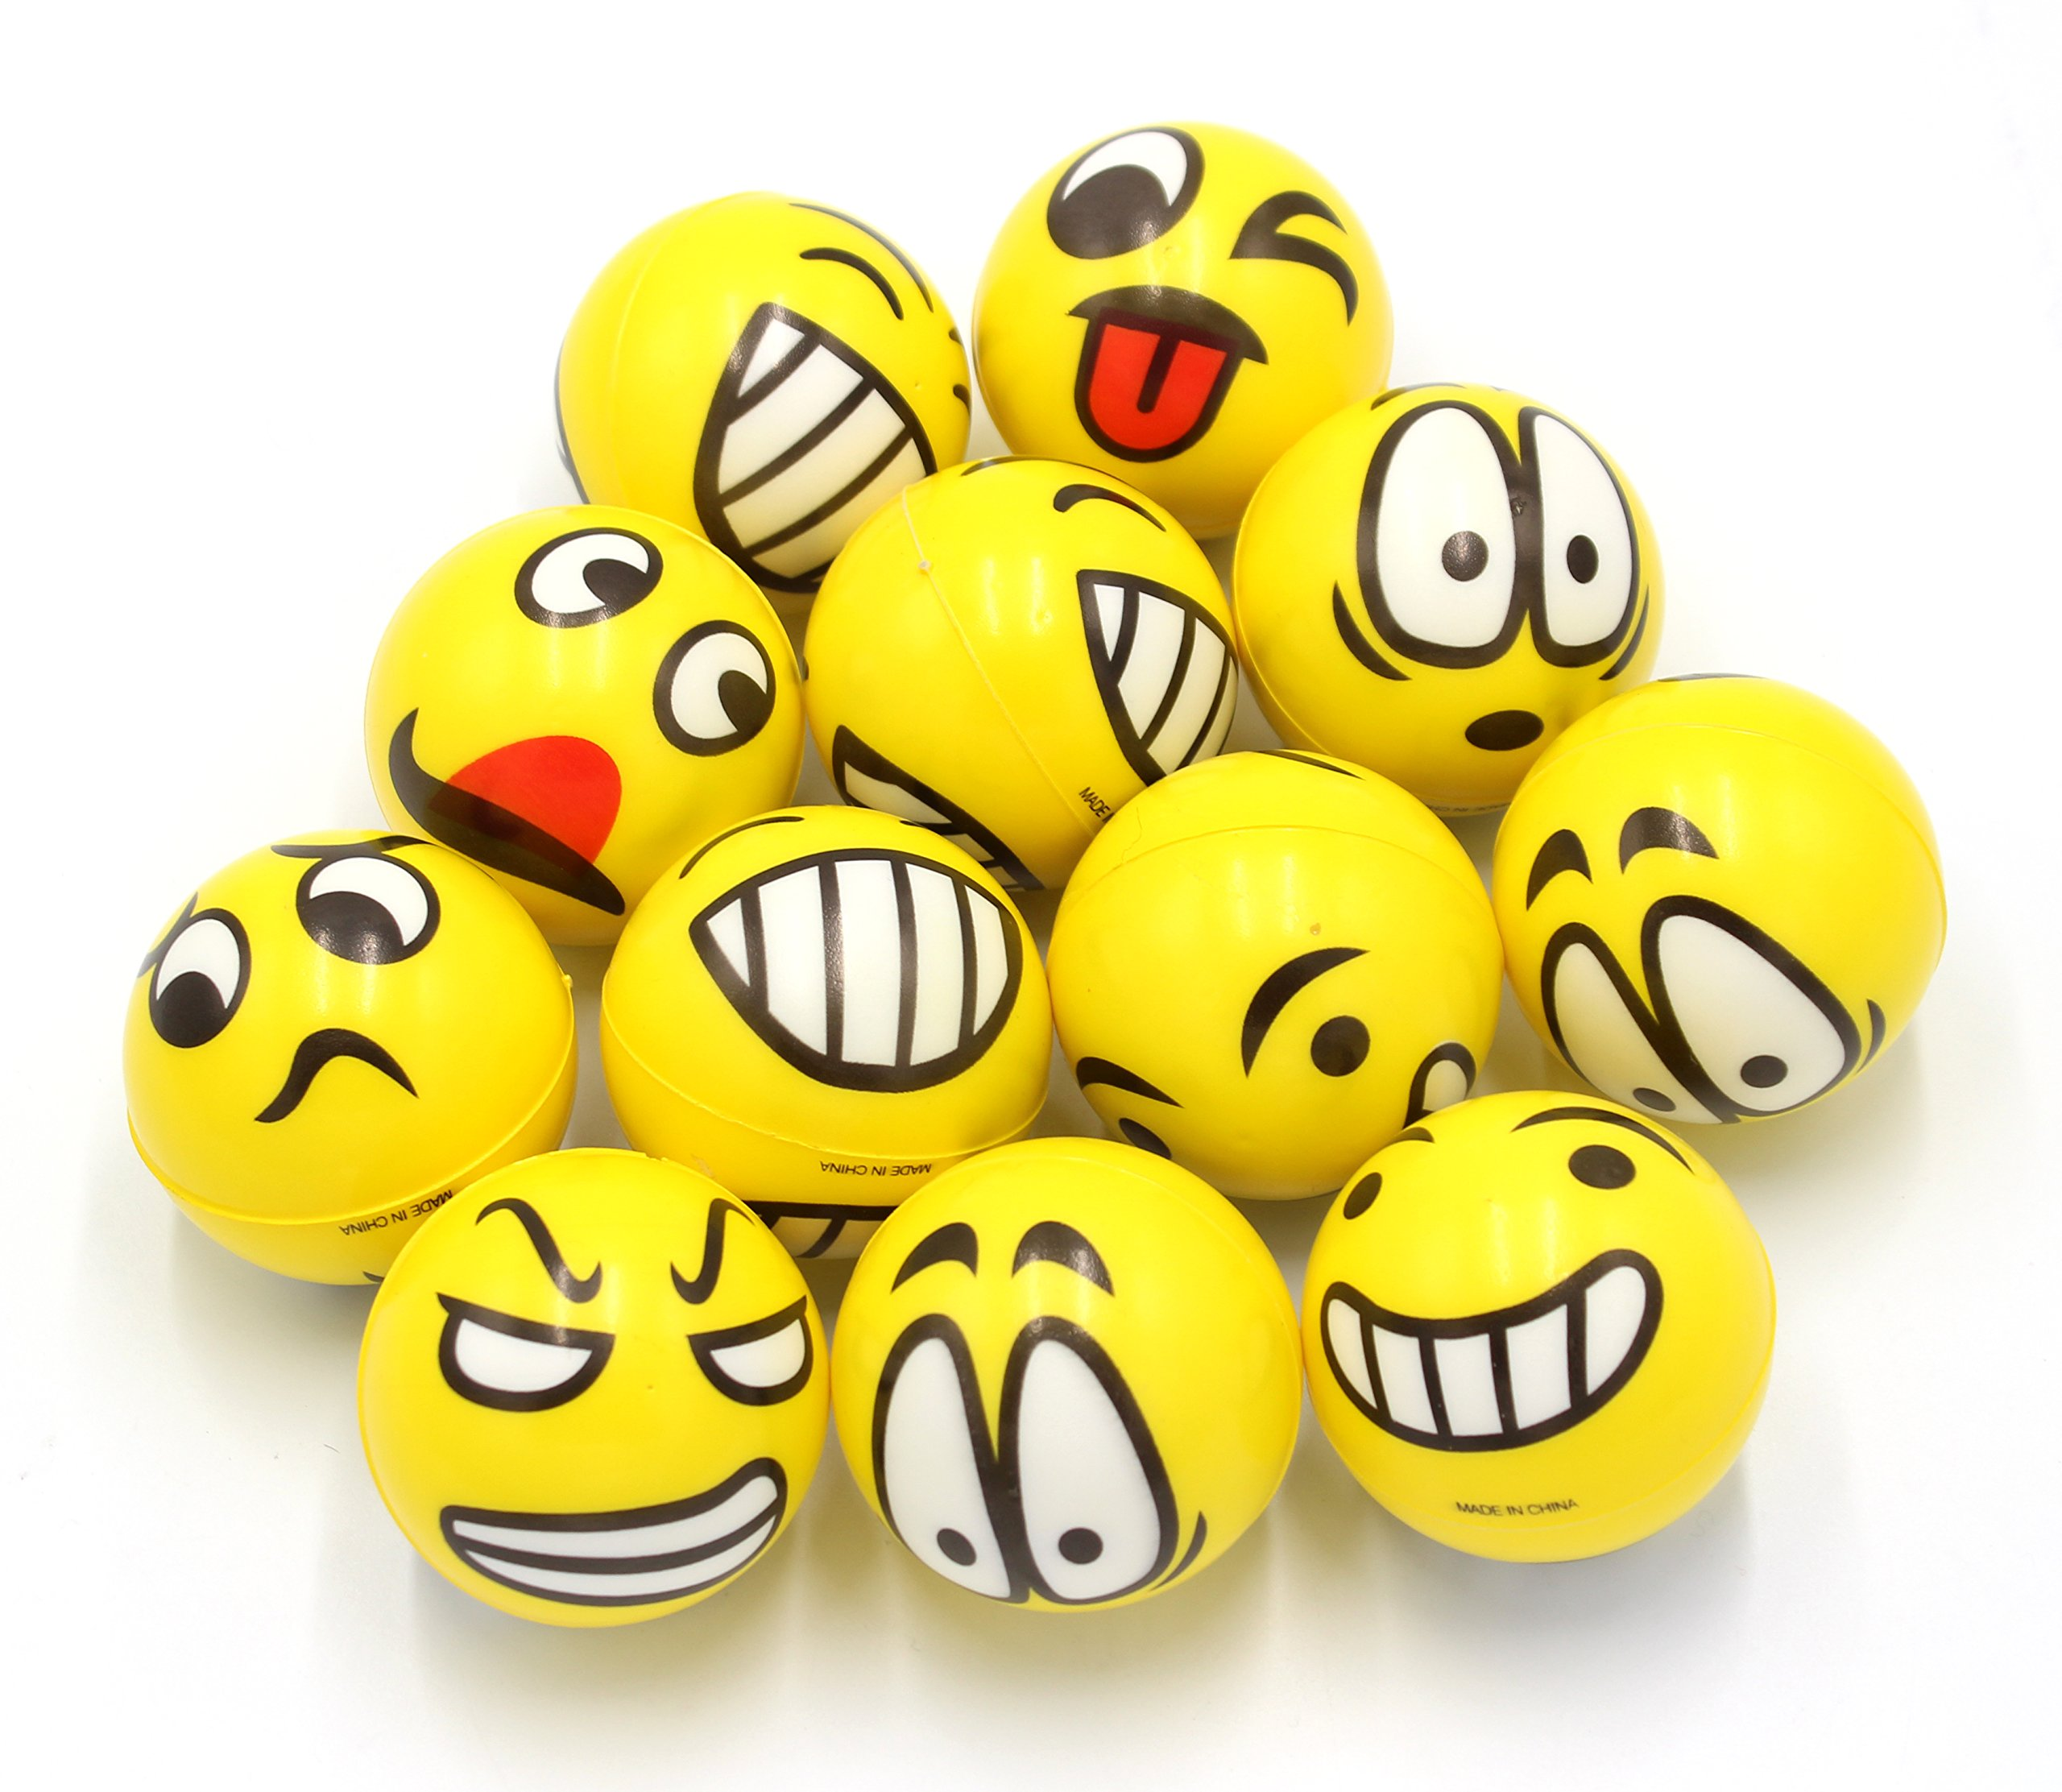 Details about Fun Face Emoji Cute Hand Wrist Stress Reliefs Squeeze Balls  12 Funny Faces